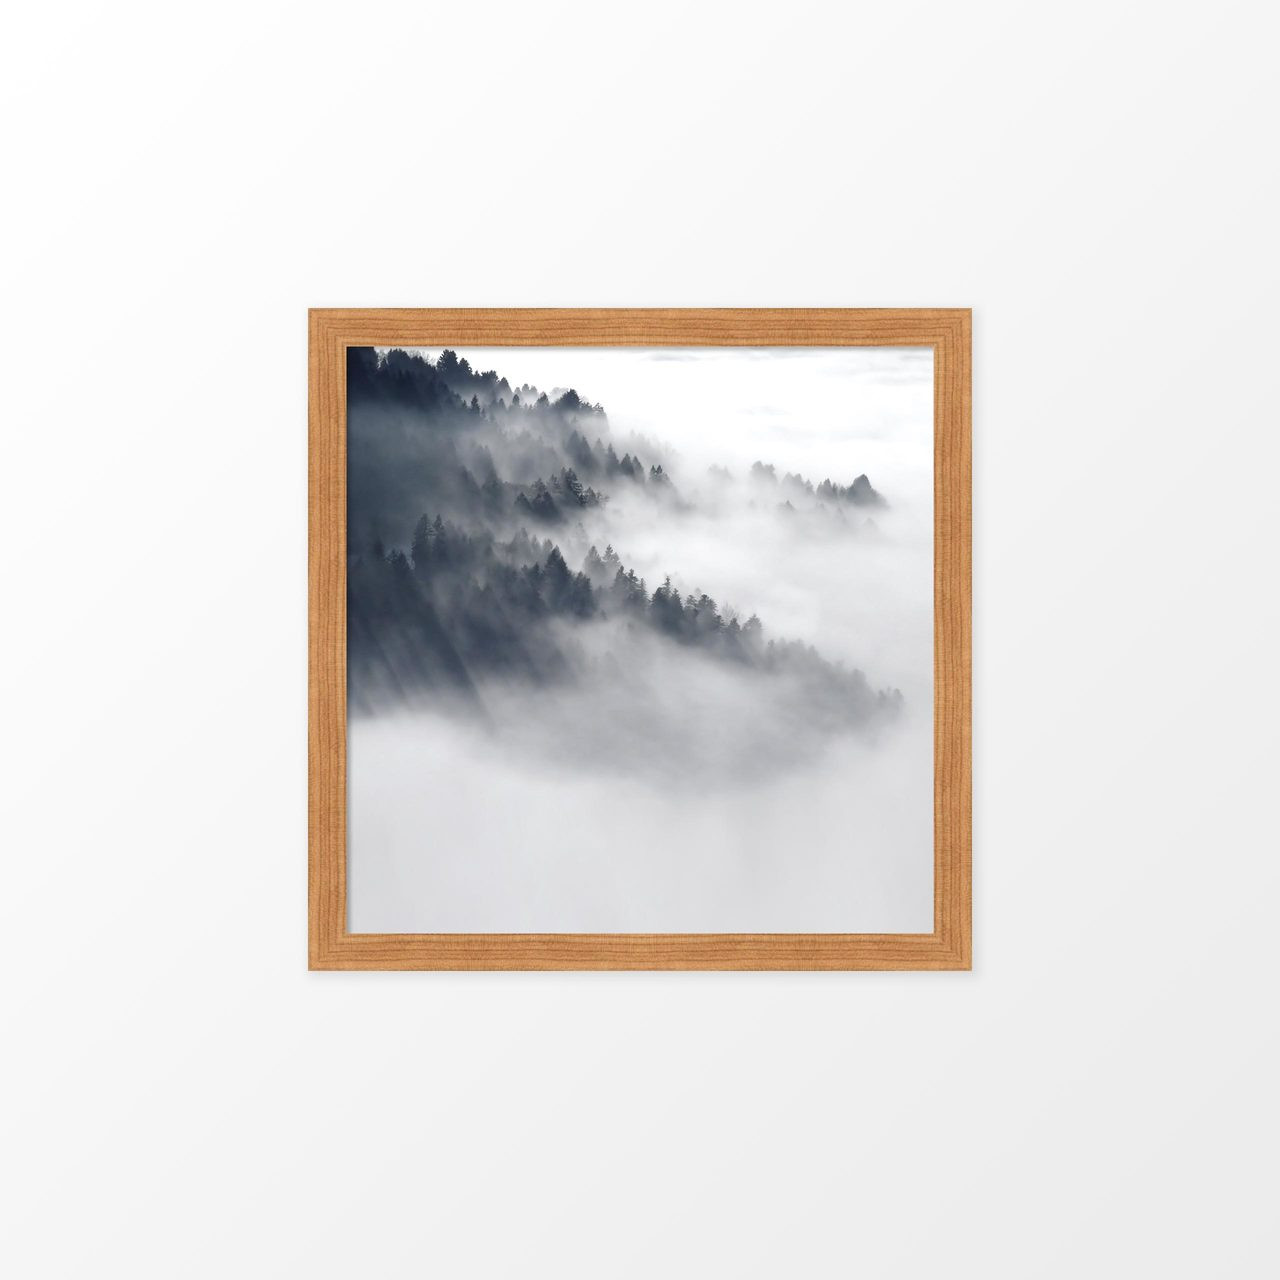 'Forest Mist II' Photography Poster from The Printed Home (Printable)